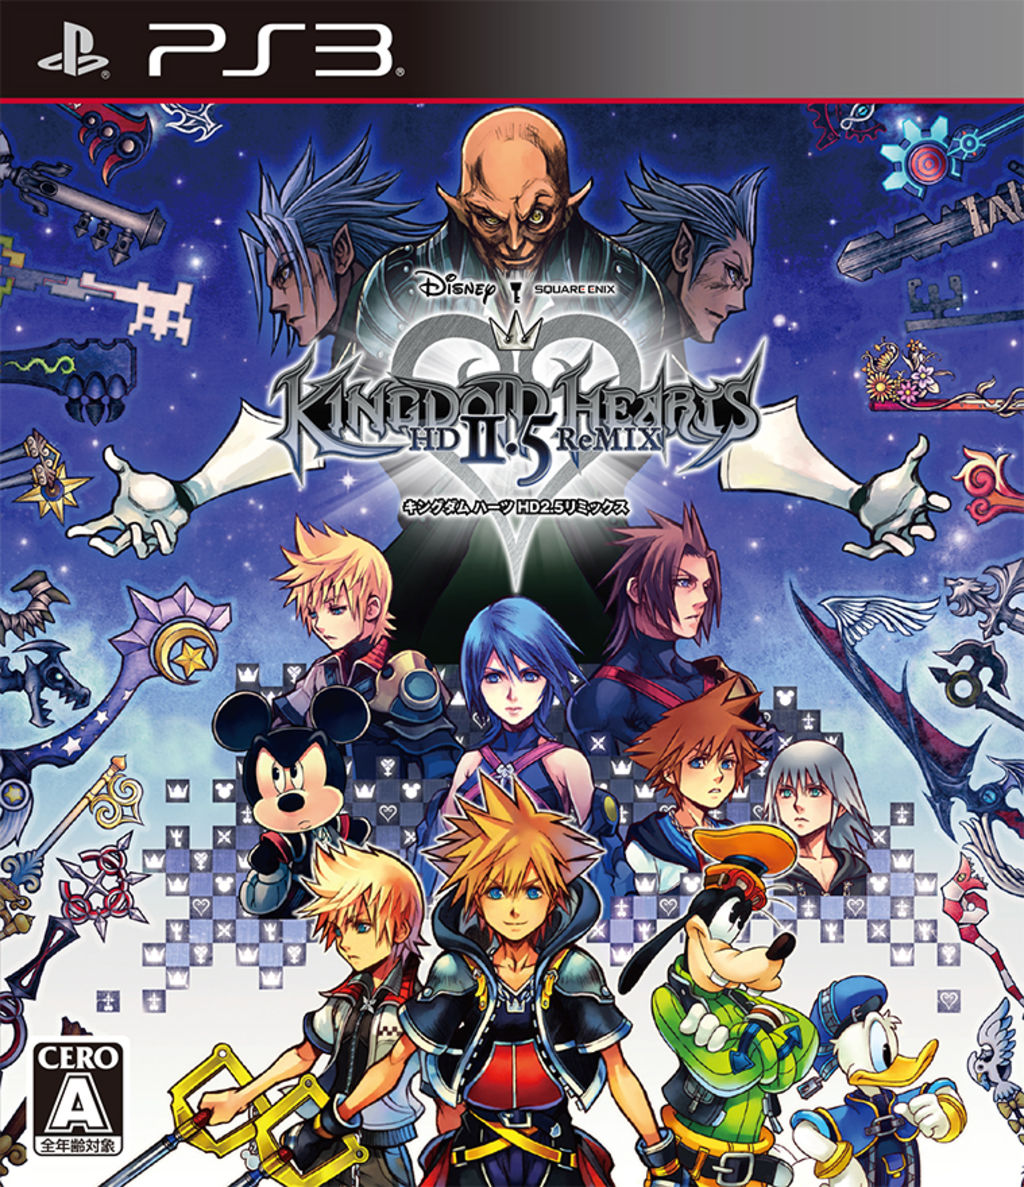 [王国之心高清版 2.5 remix|kingdom hearts ii hd 2.5 remix|...